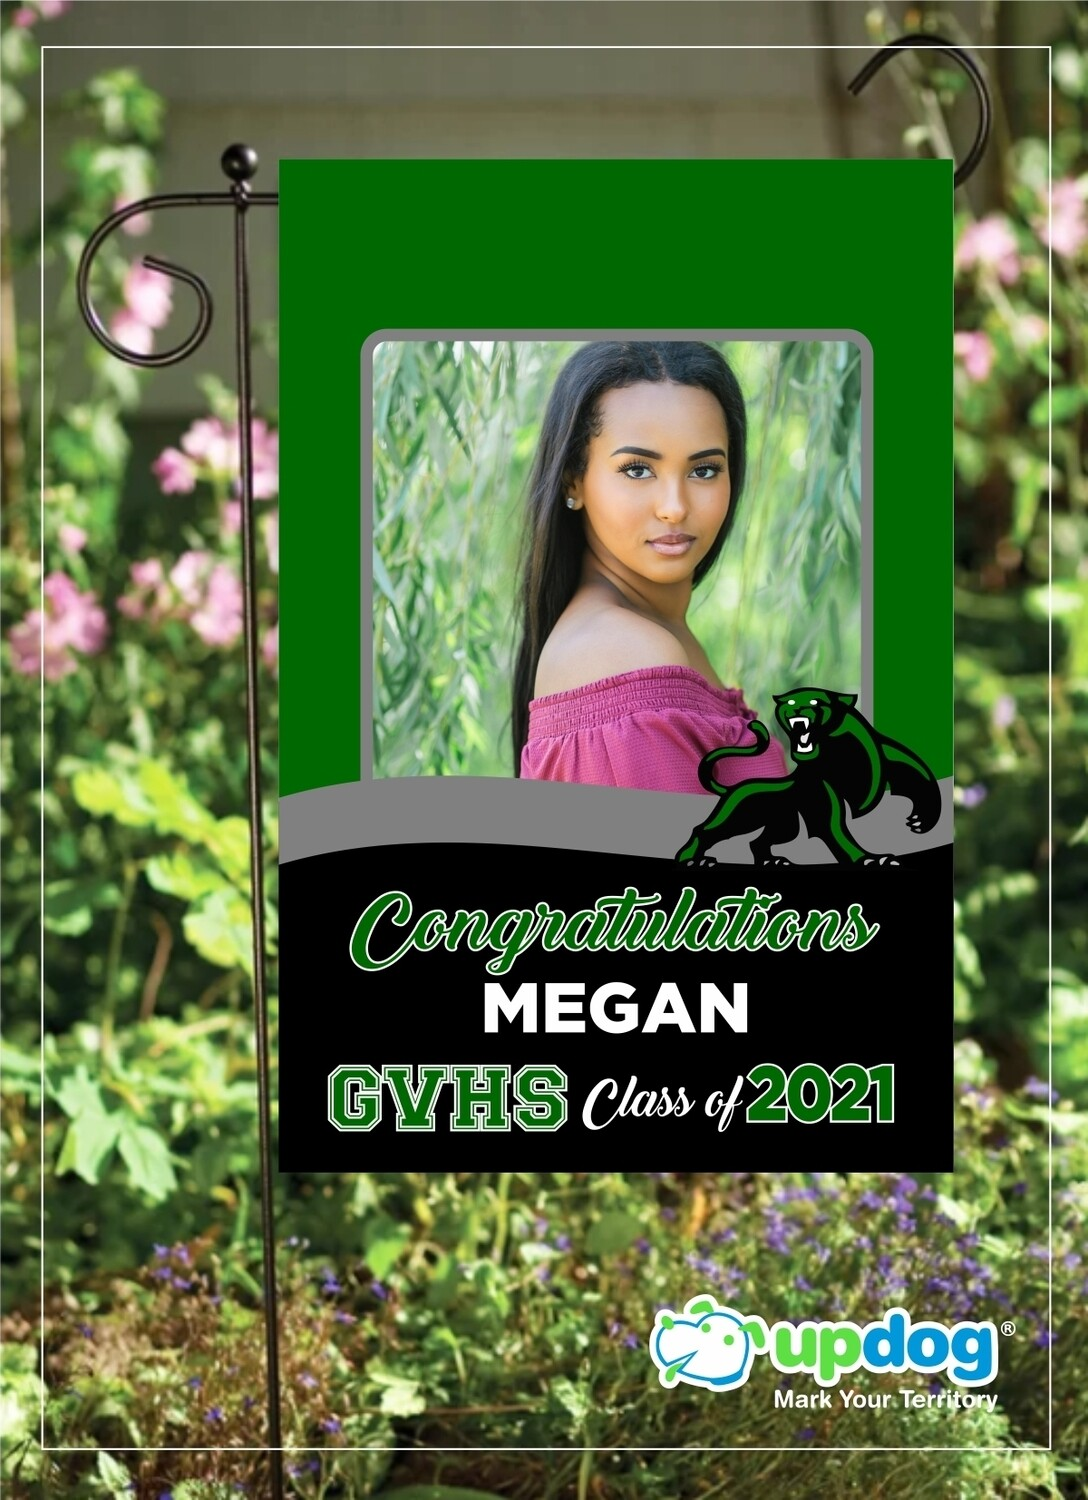 Green Valley High School - Personalized Photo and Name, Class of 2021 Senior Graduation Garden Flag, Class of 2021 Garden Flag, Congratulations Garden Flag